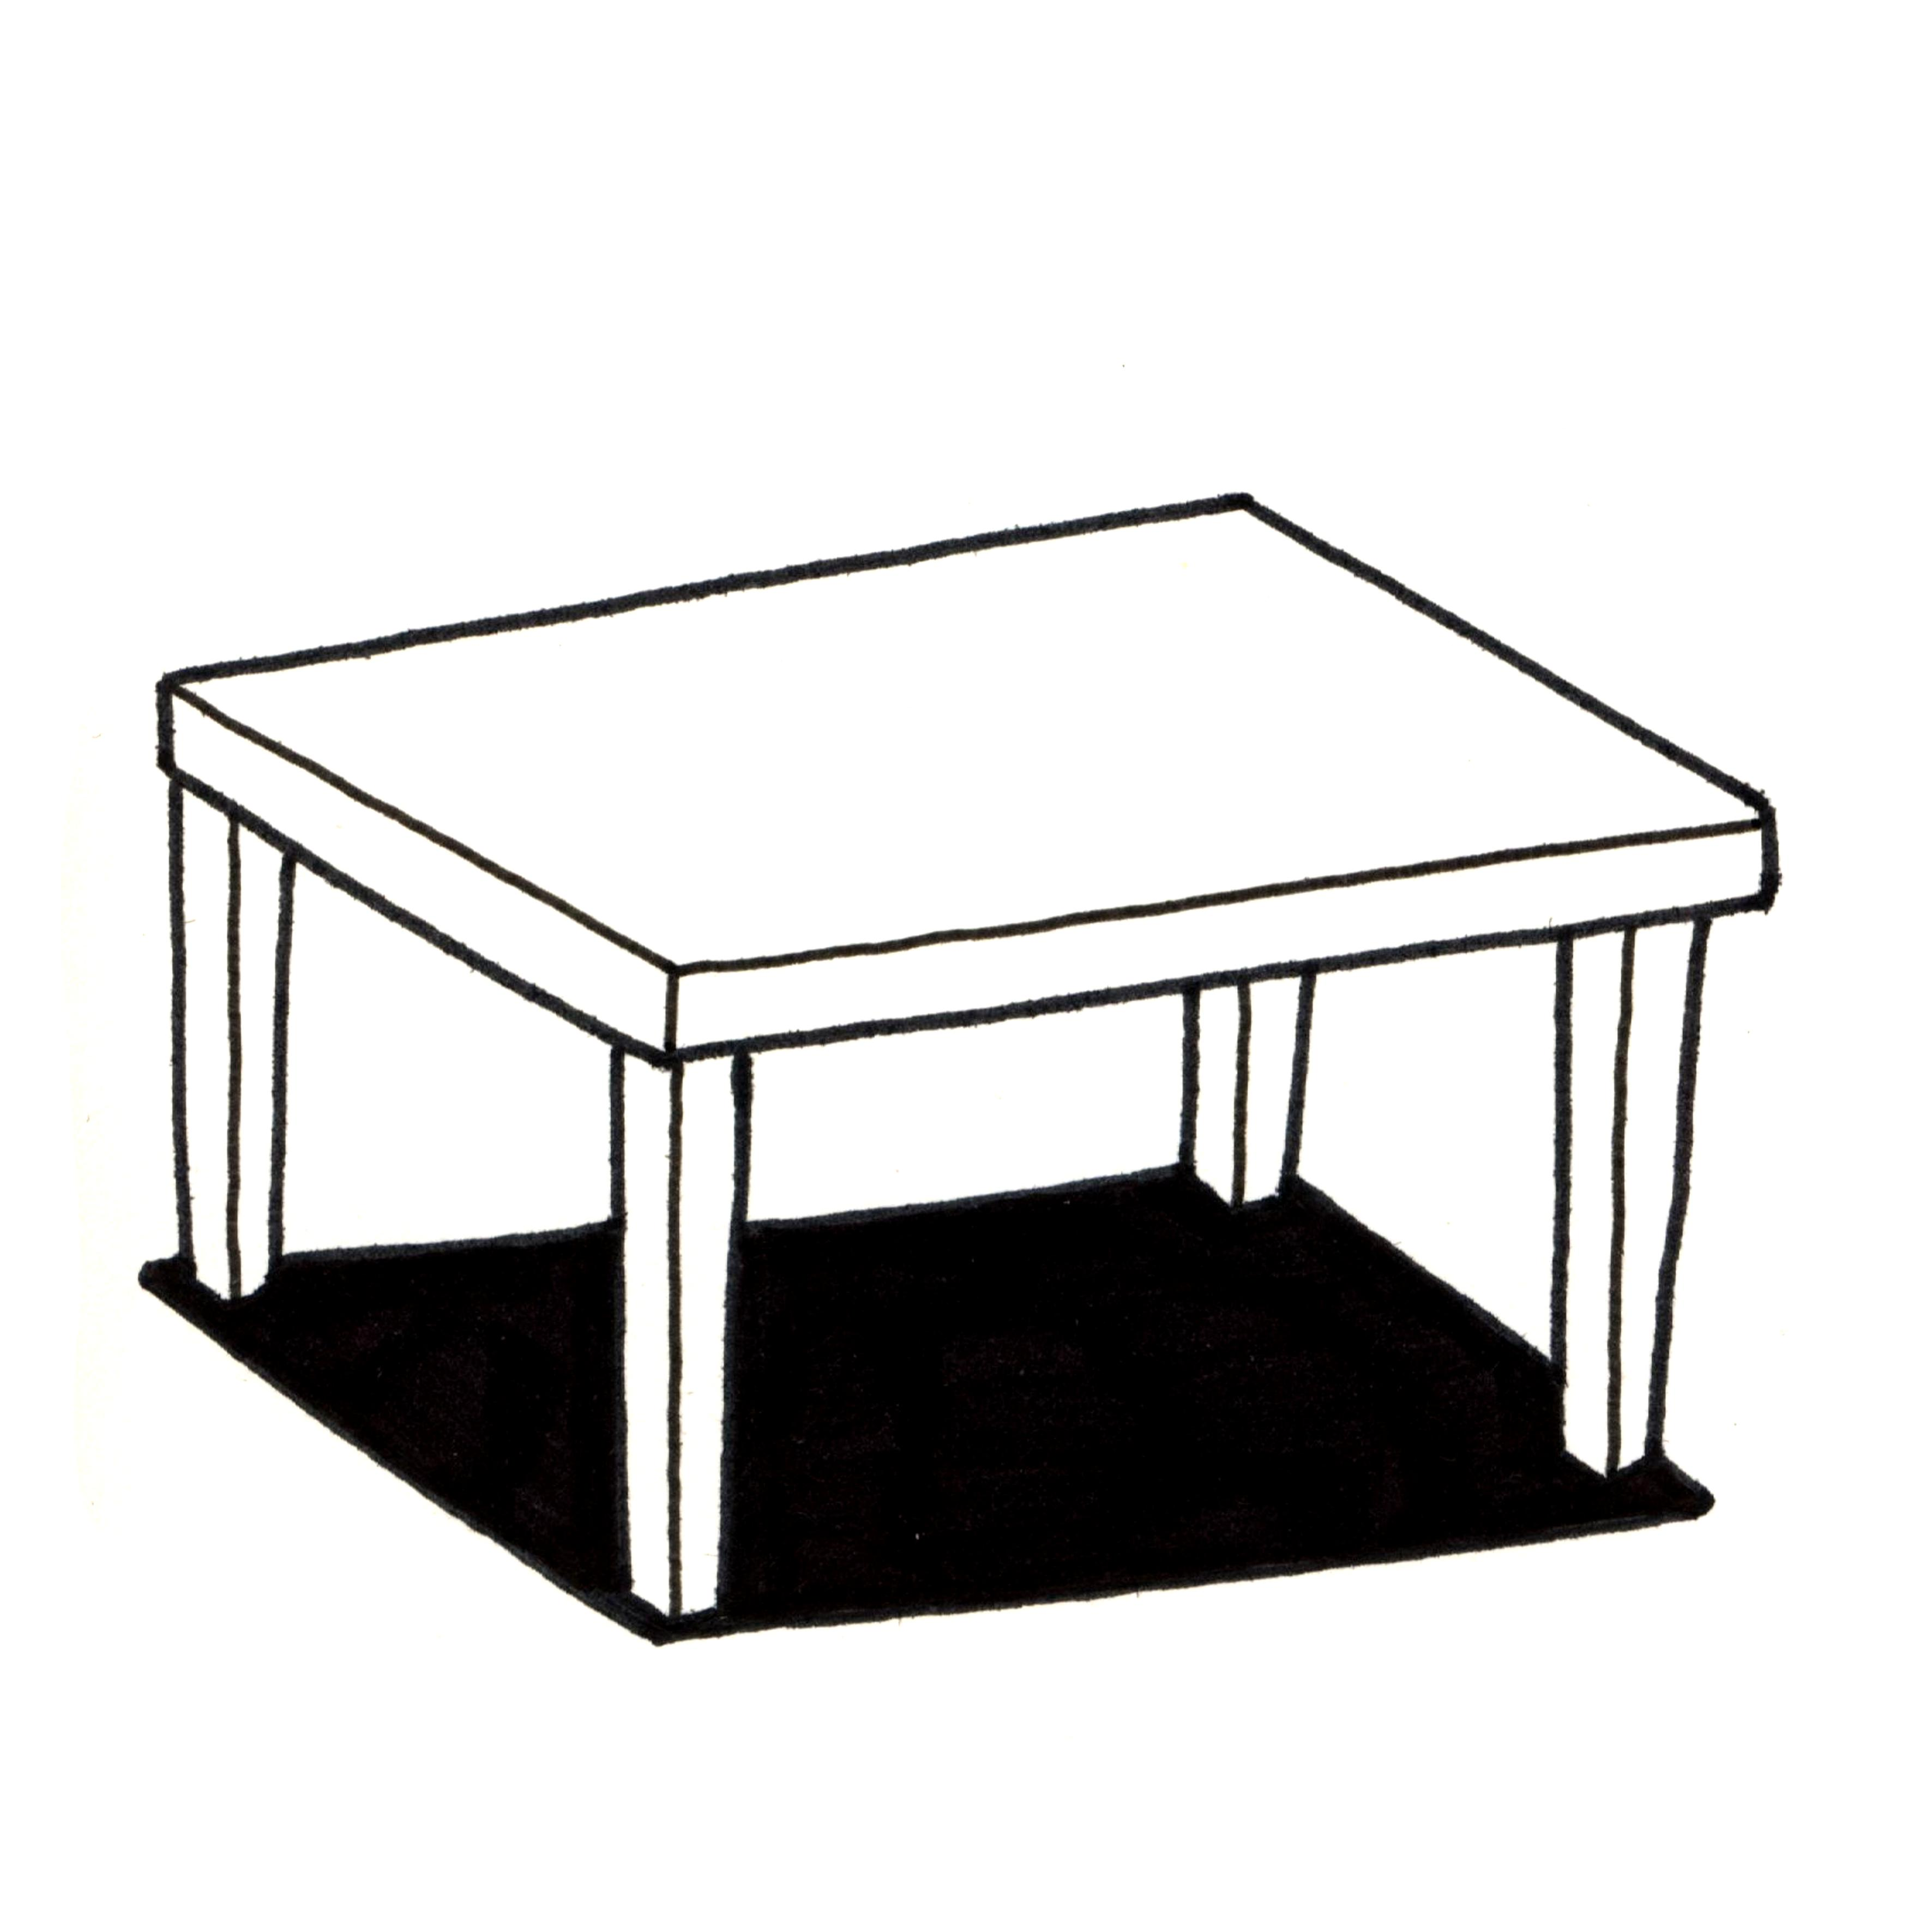 Best table lumineuse dessin ikea with table lumineuse - Table a dessin lumineuse ...